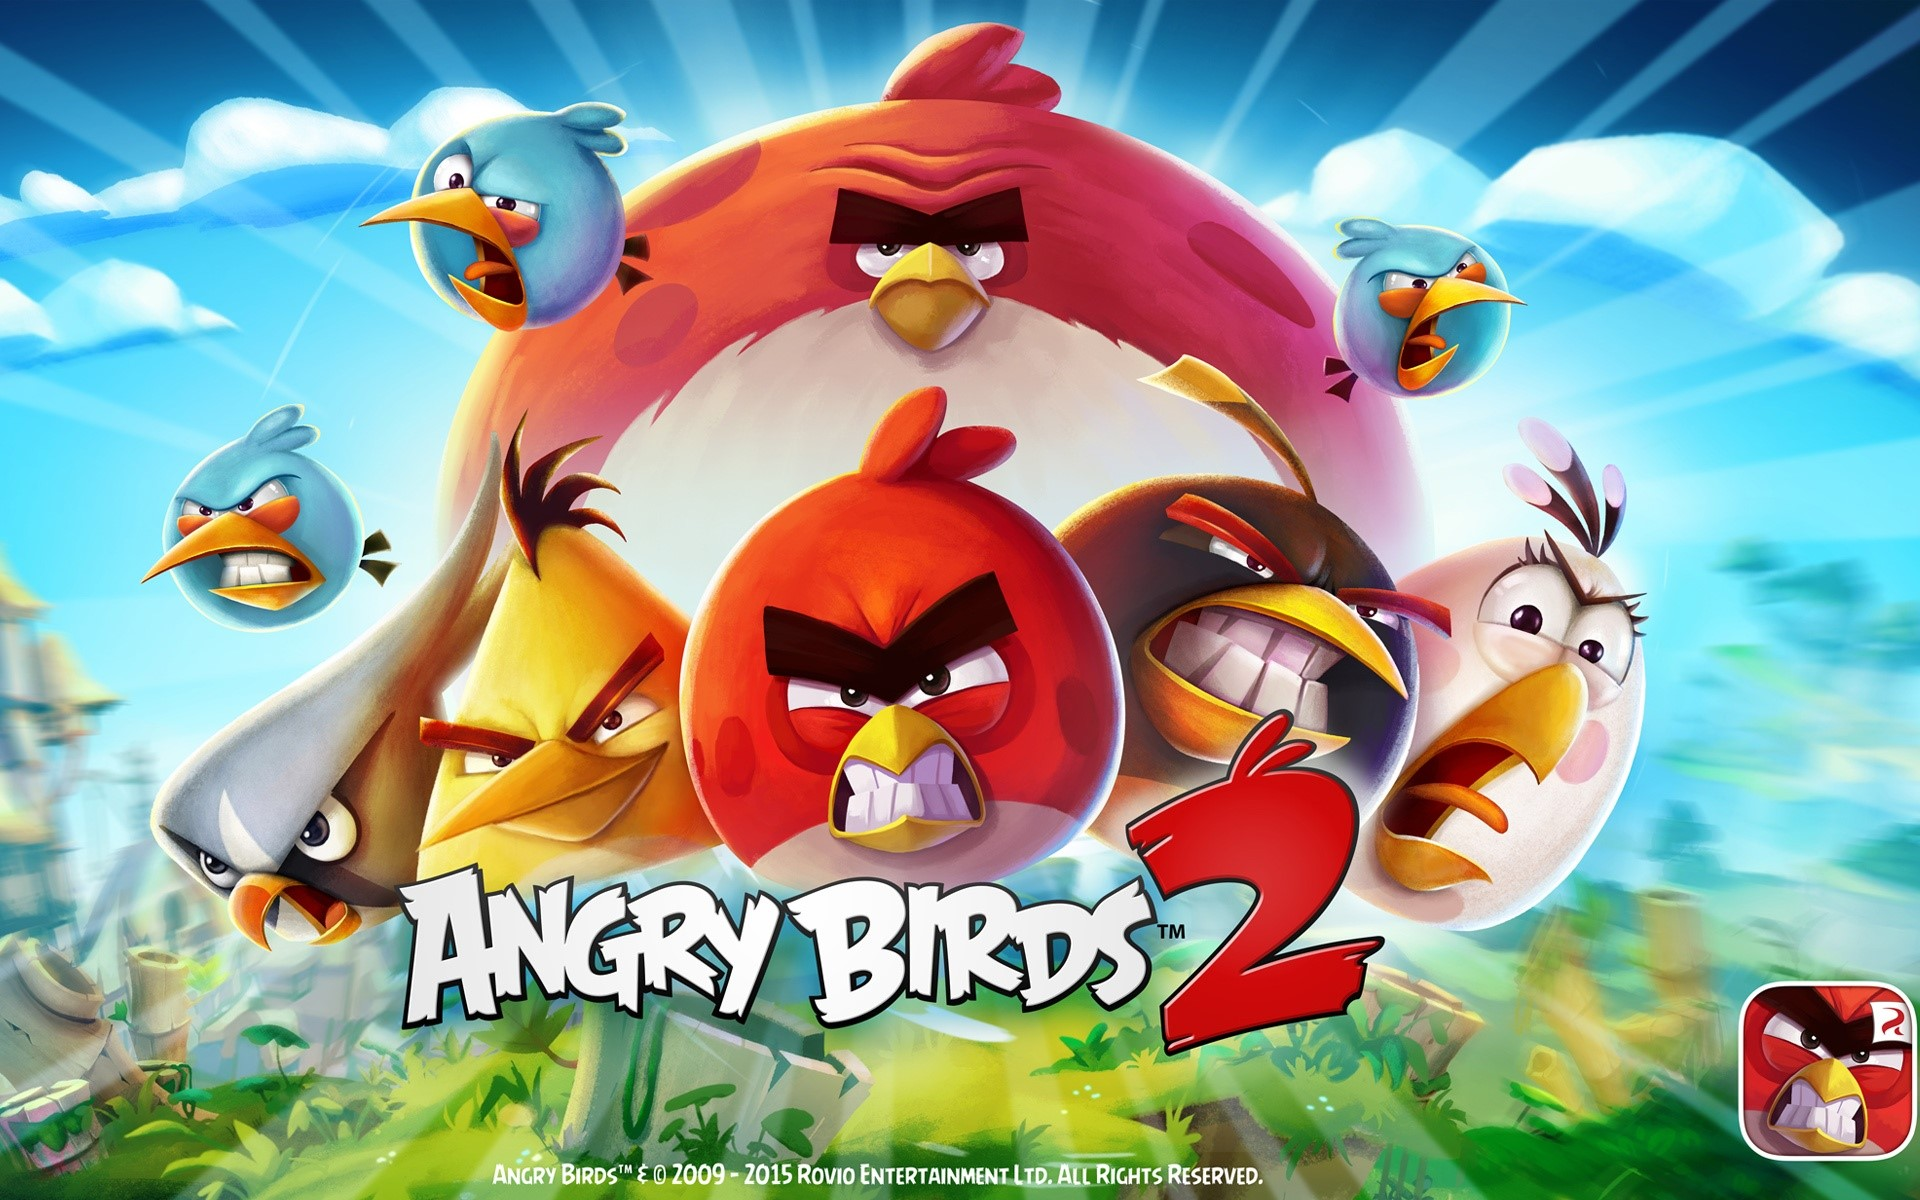 Wallpaper Angry Birds 2 Game